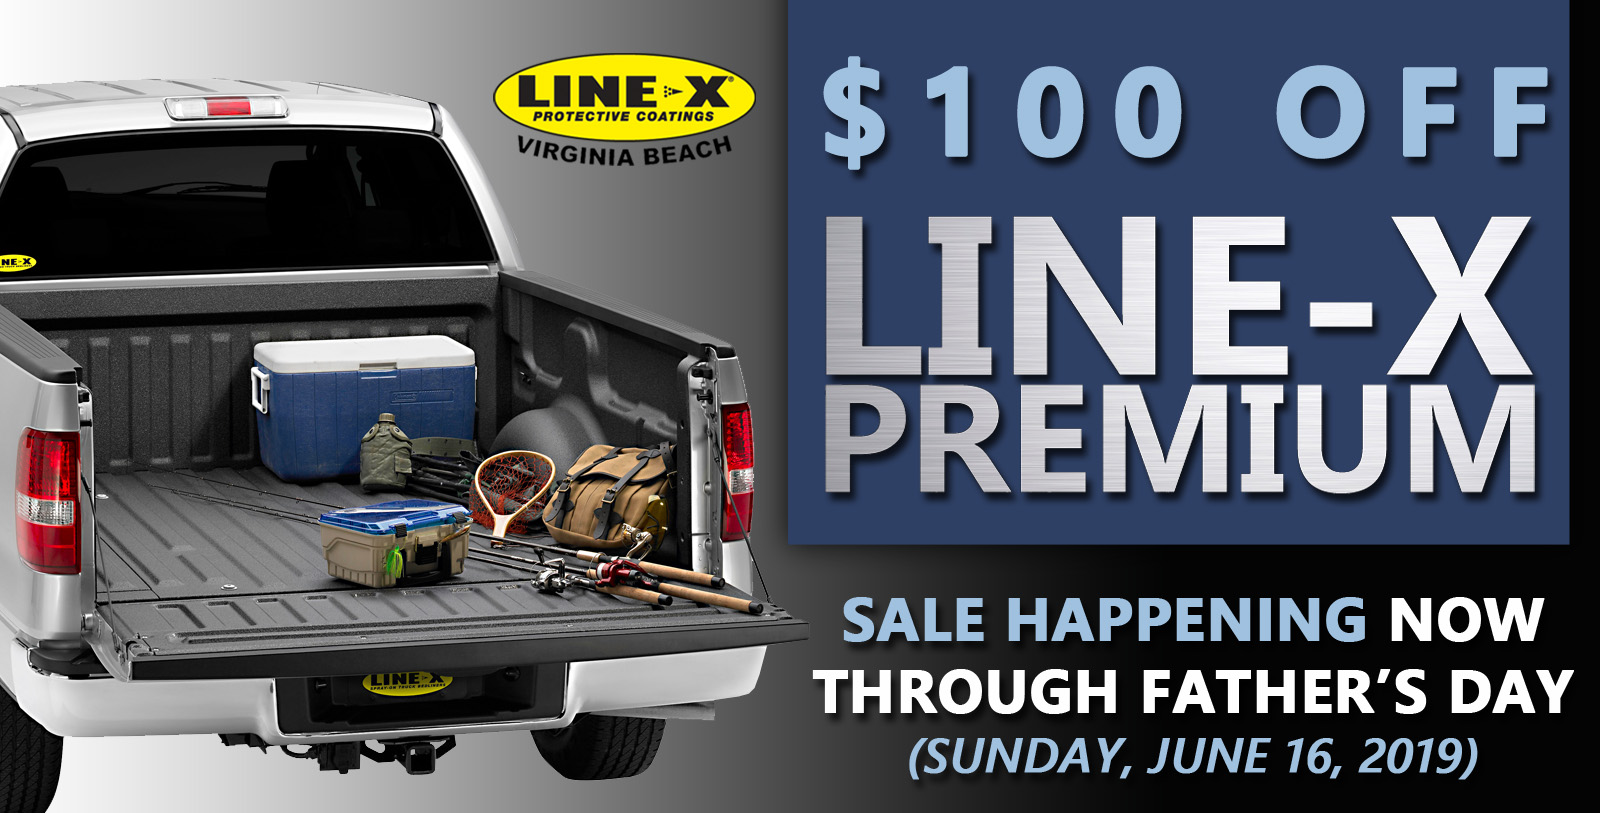 Memorial Day Sale Specials Memorial Day Sale Specials Line X The World Line X Of Virginia Beach Protective Coatings Truck Bedliners And Accessories